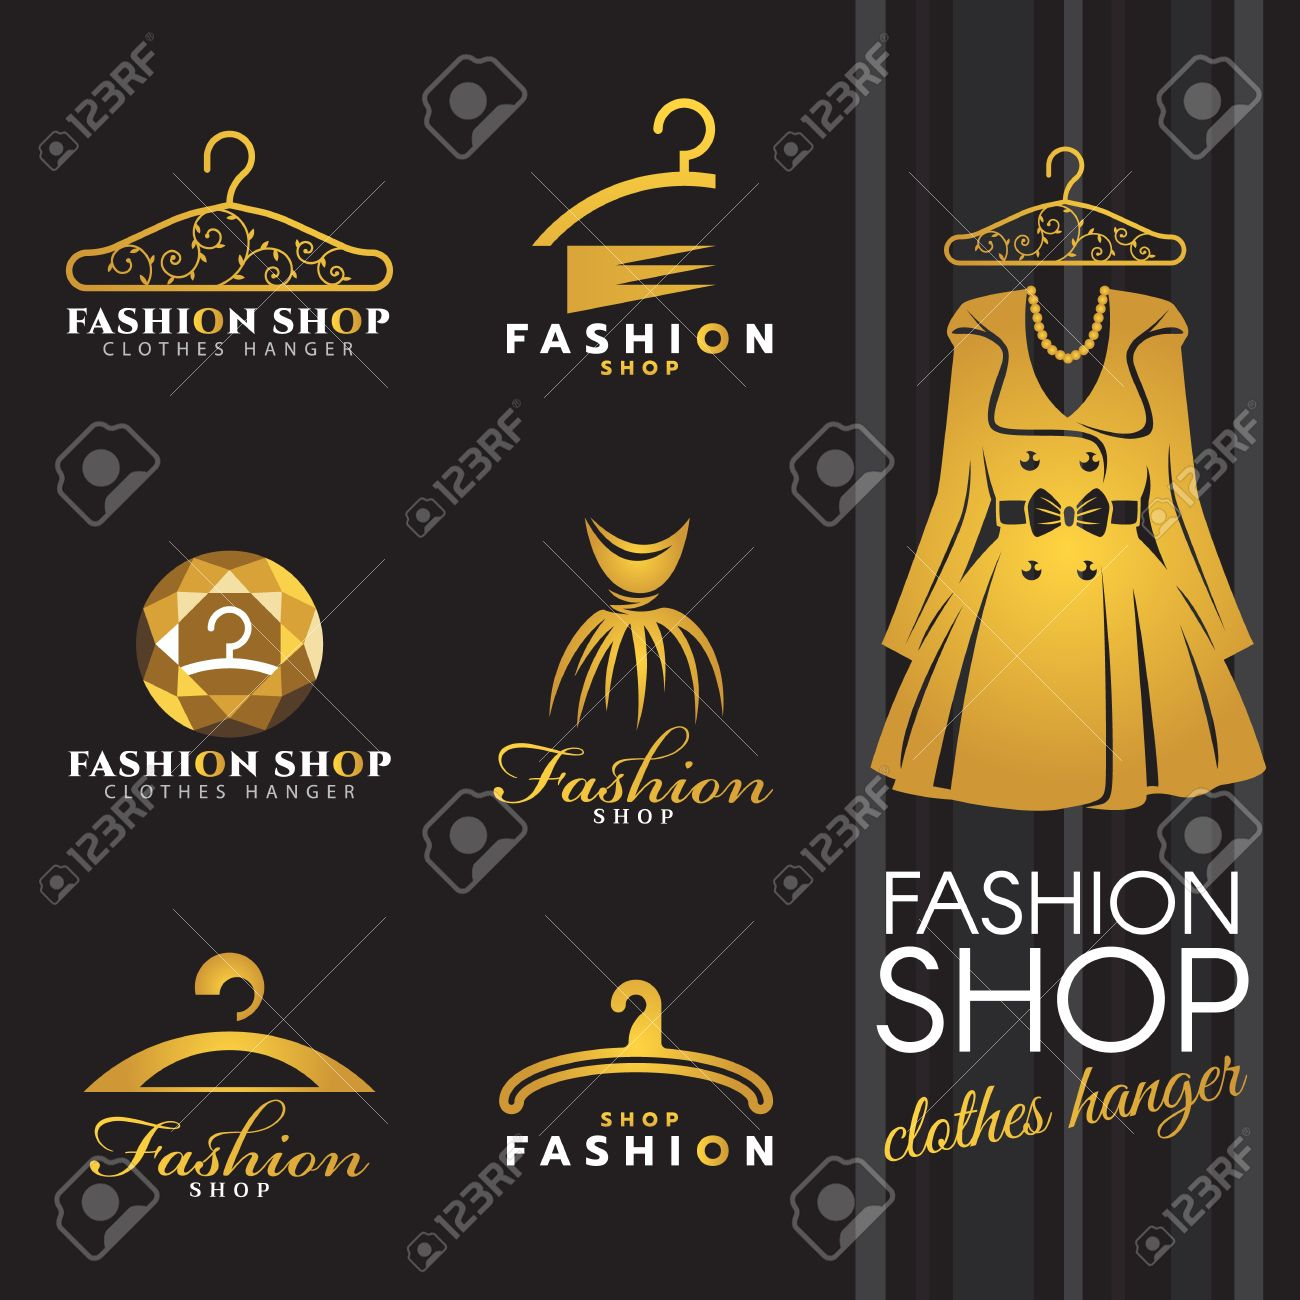 Fashion Shop Logo Gold Winter Dress And Clothes Hanger Logo Royalty Free Cliparts Vectors And Stock Illustration Image 66920727